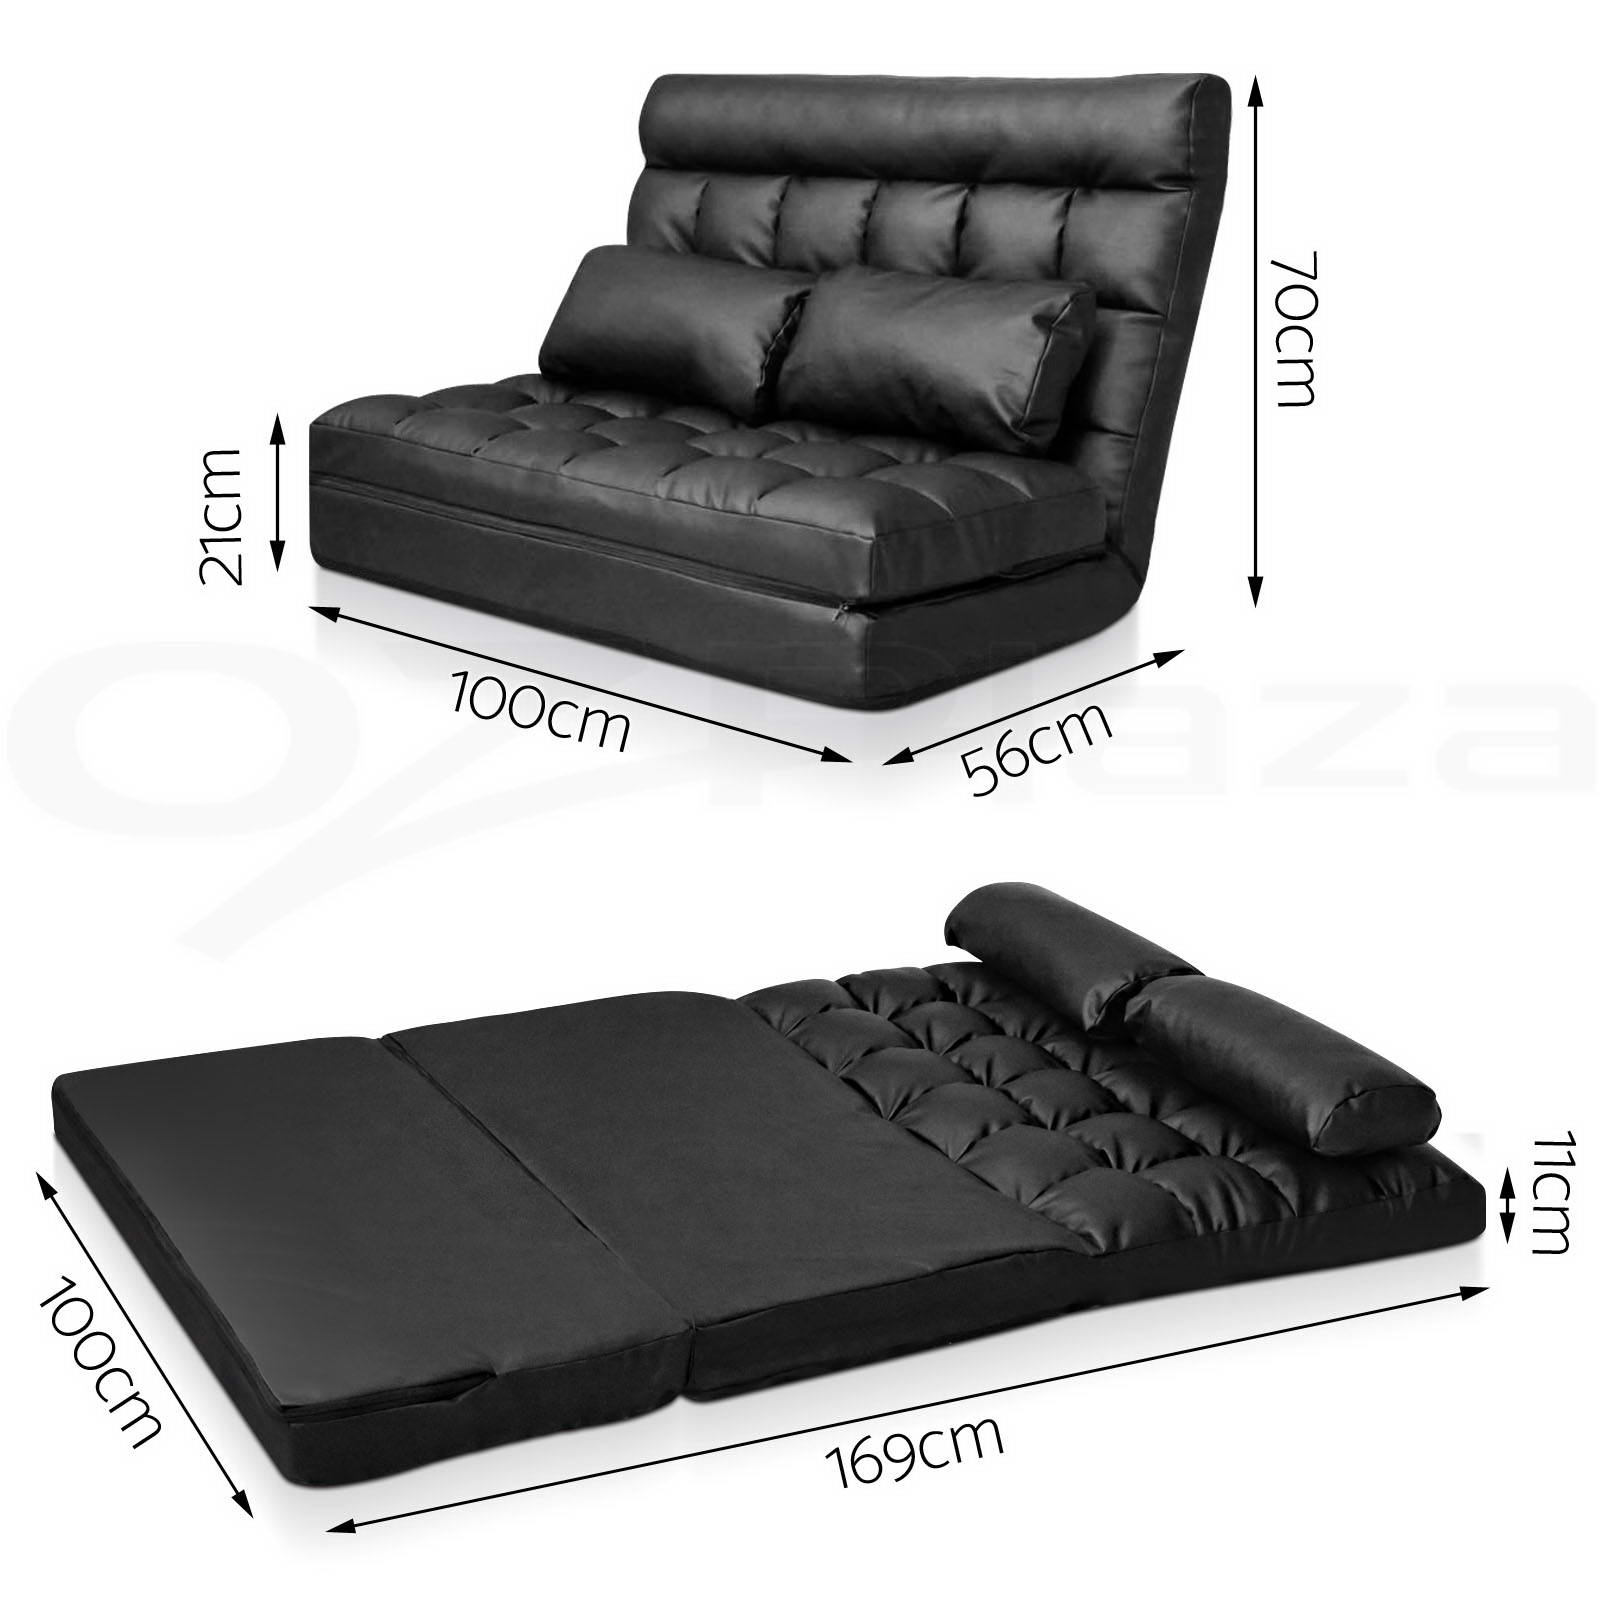 Details about Lounge Sofa Bed DOUBLE SIZE Floor Recliner Folding